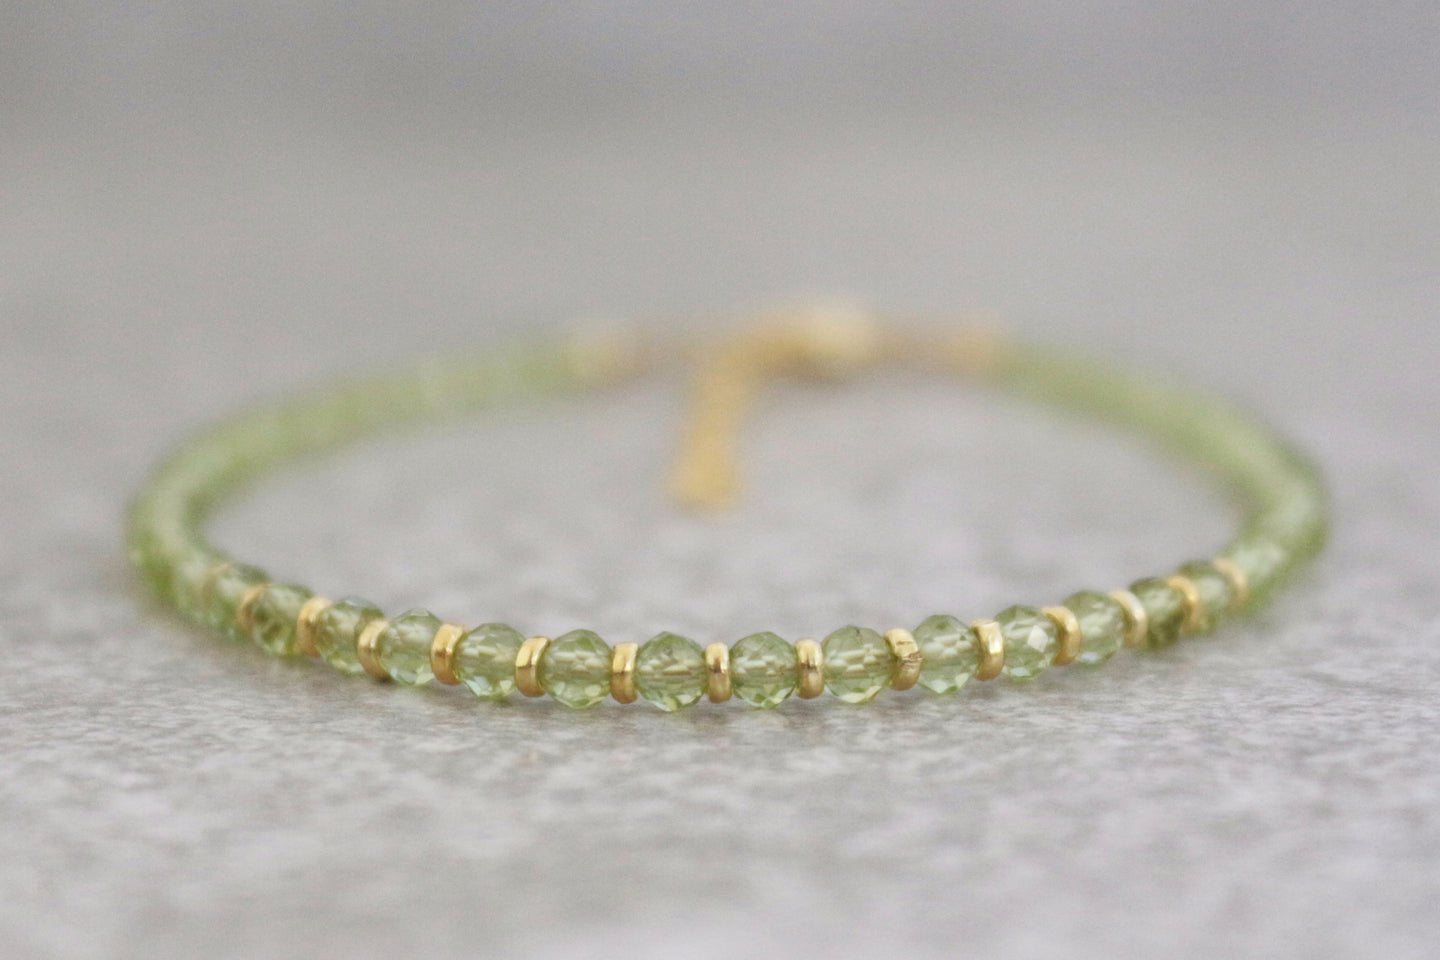 Green_Peridot_Beaded_Bracelet_for_women_Unique_simple_dainty_stackable_bracelet_gift_for_her